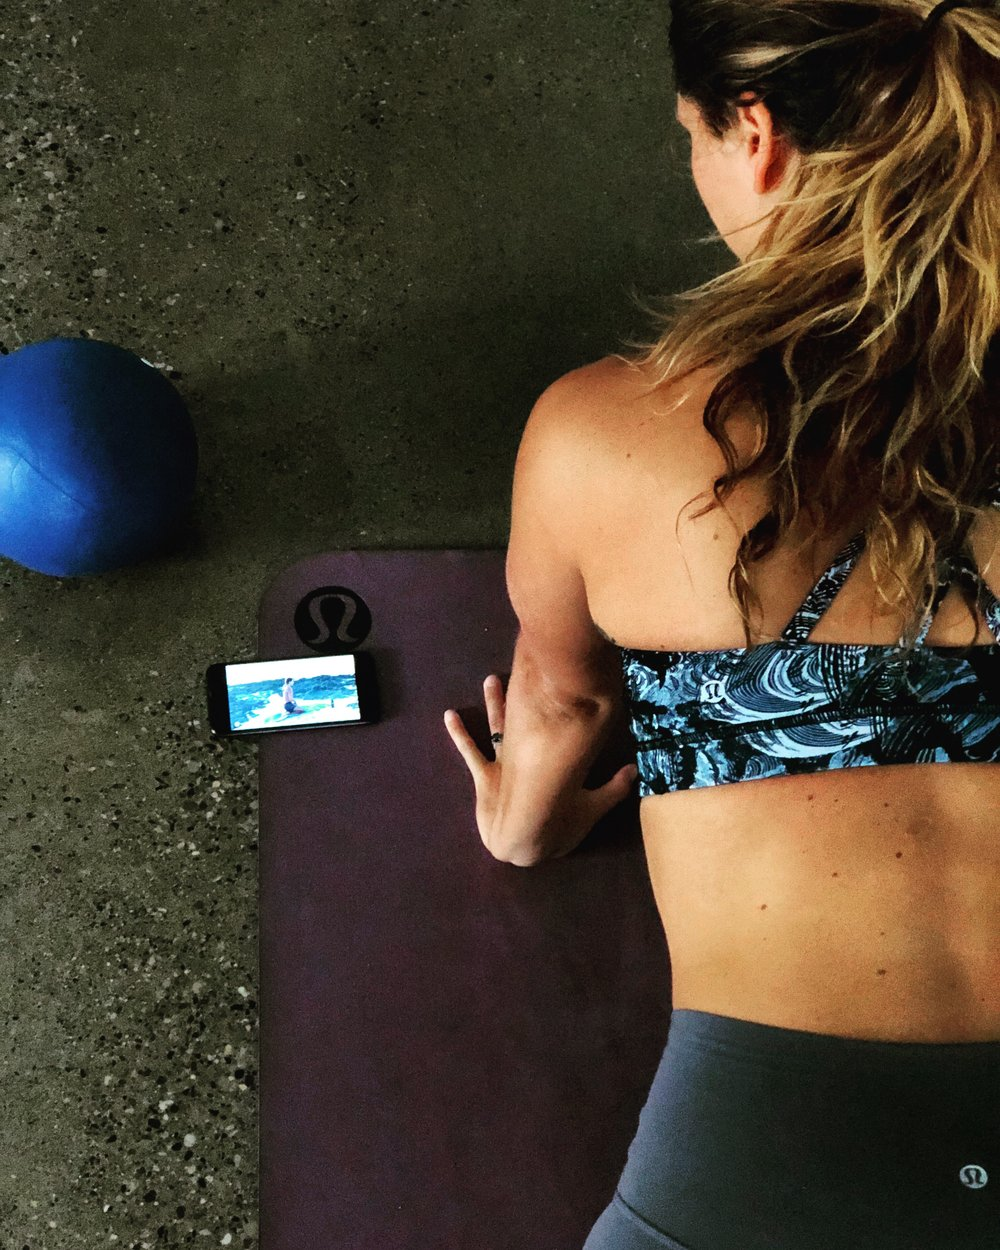 CONVENIENCE - * Your schedule, your space , your practice* Body weight, resistance bands and a pilates ball is all you need to get Practicing today